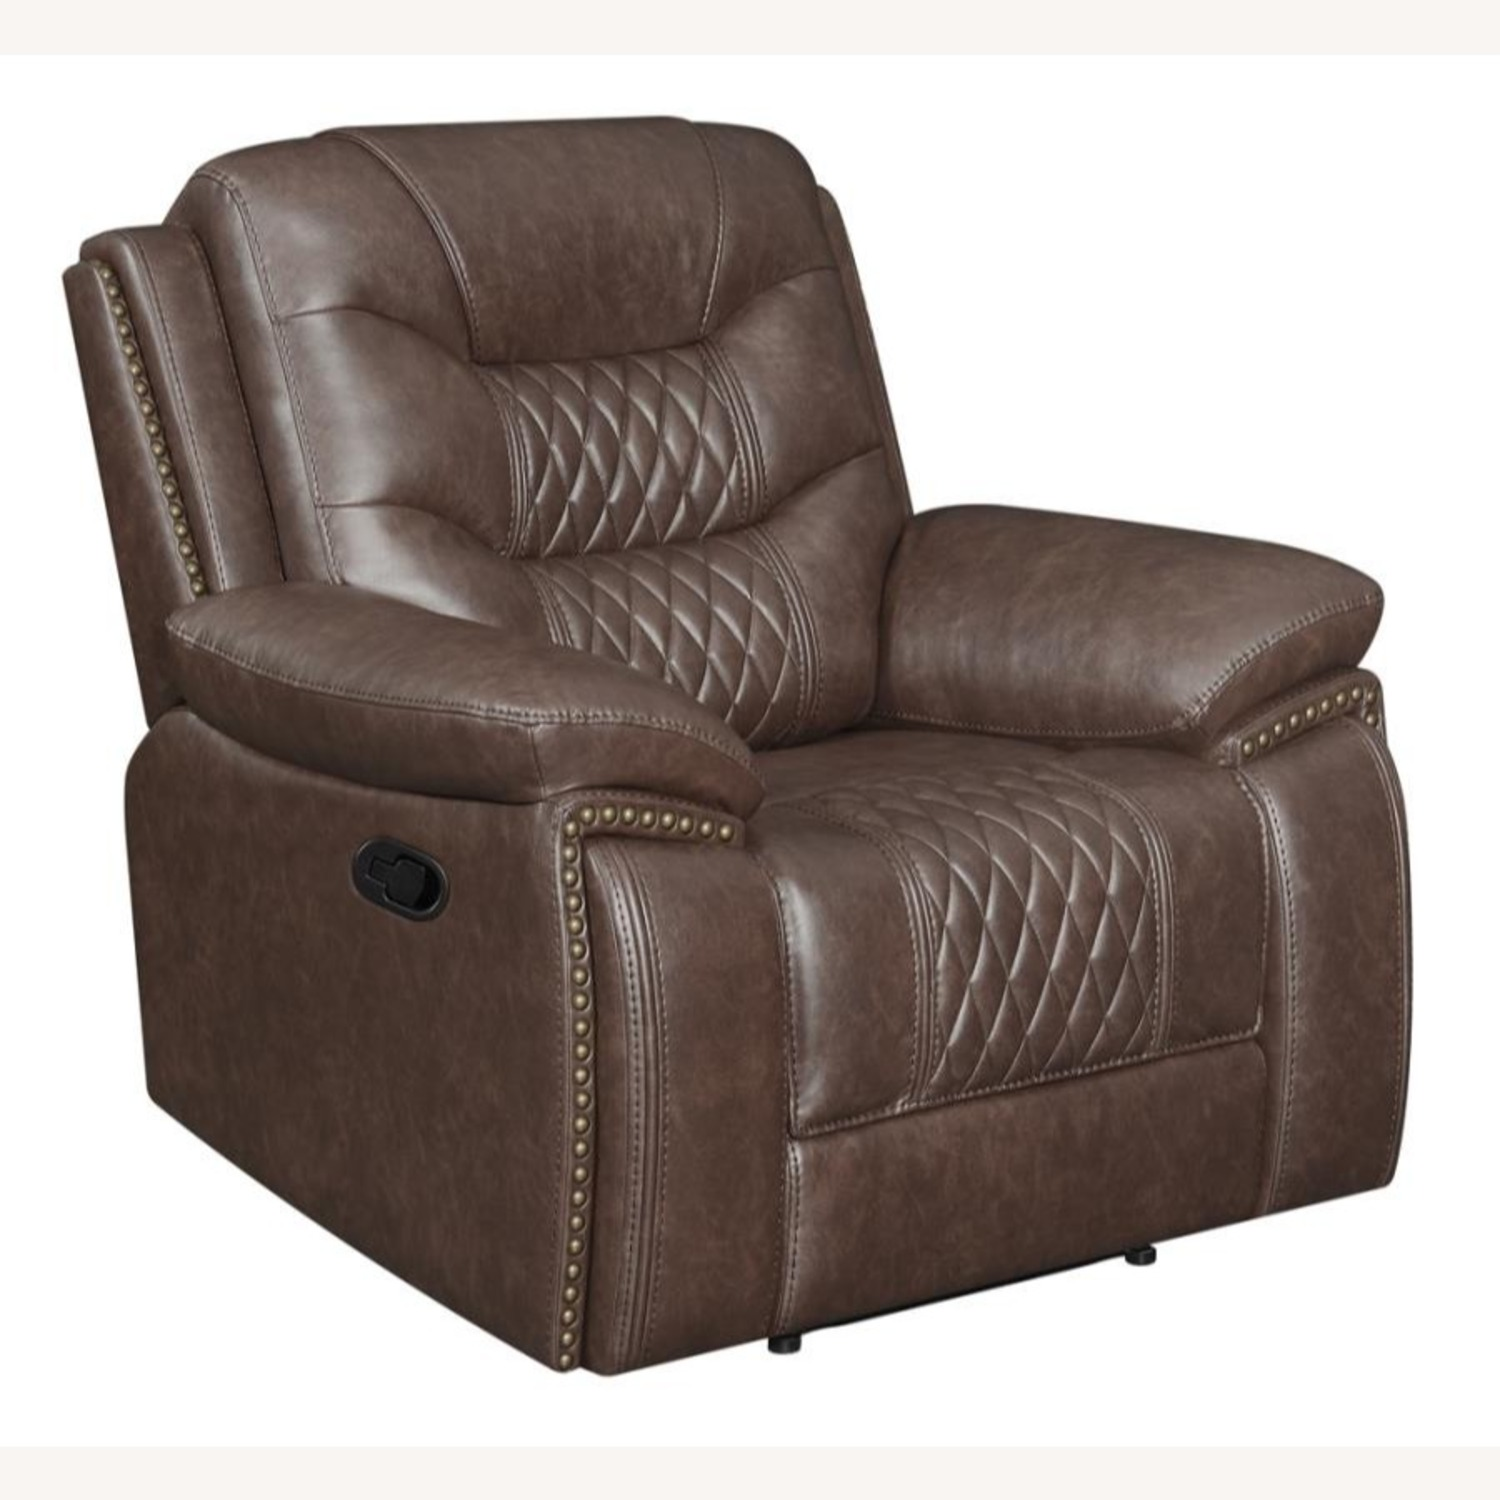 Recliner In Comfortable Brown Performance Leather - image-0